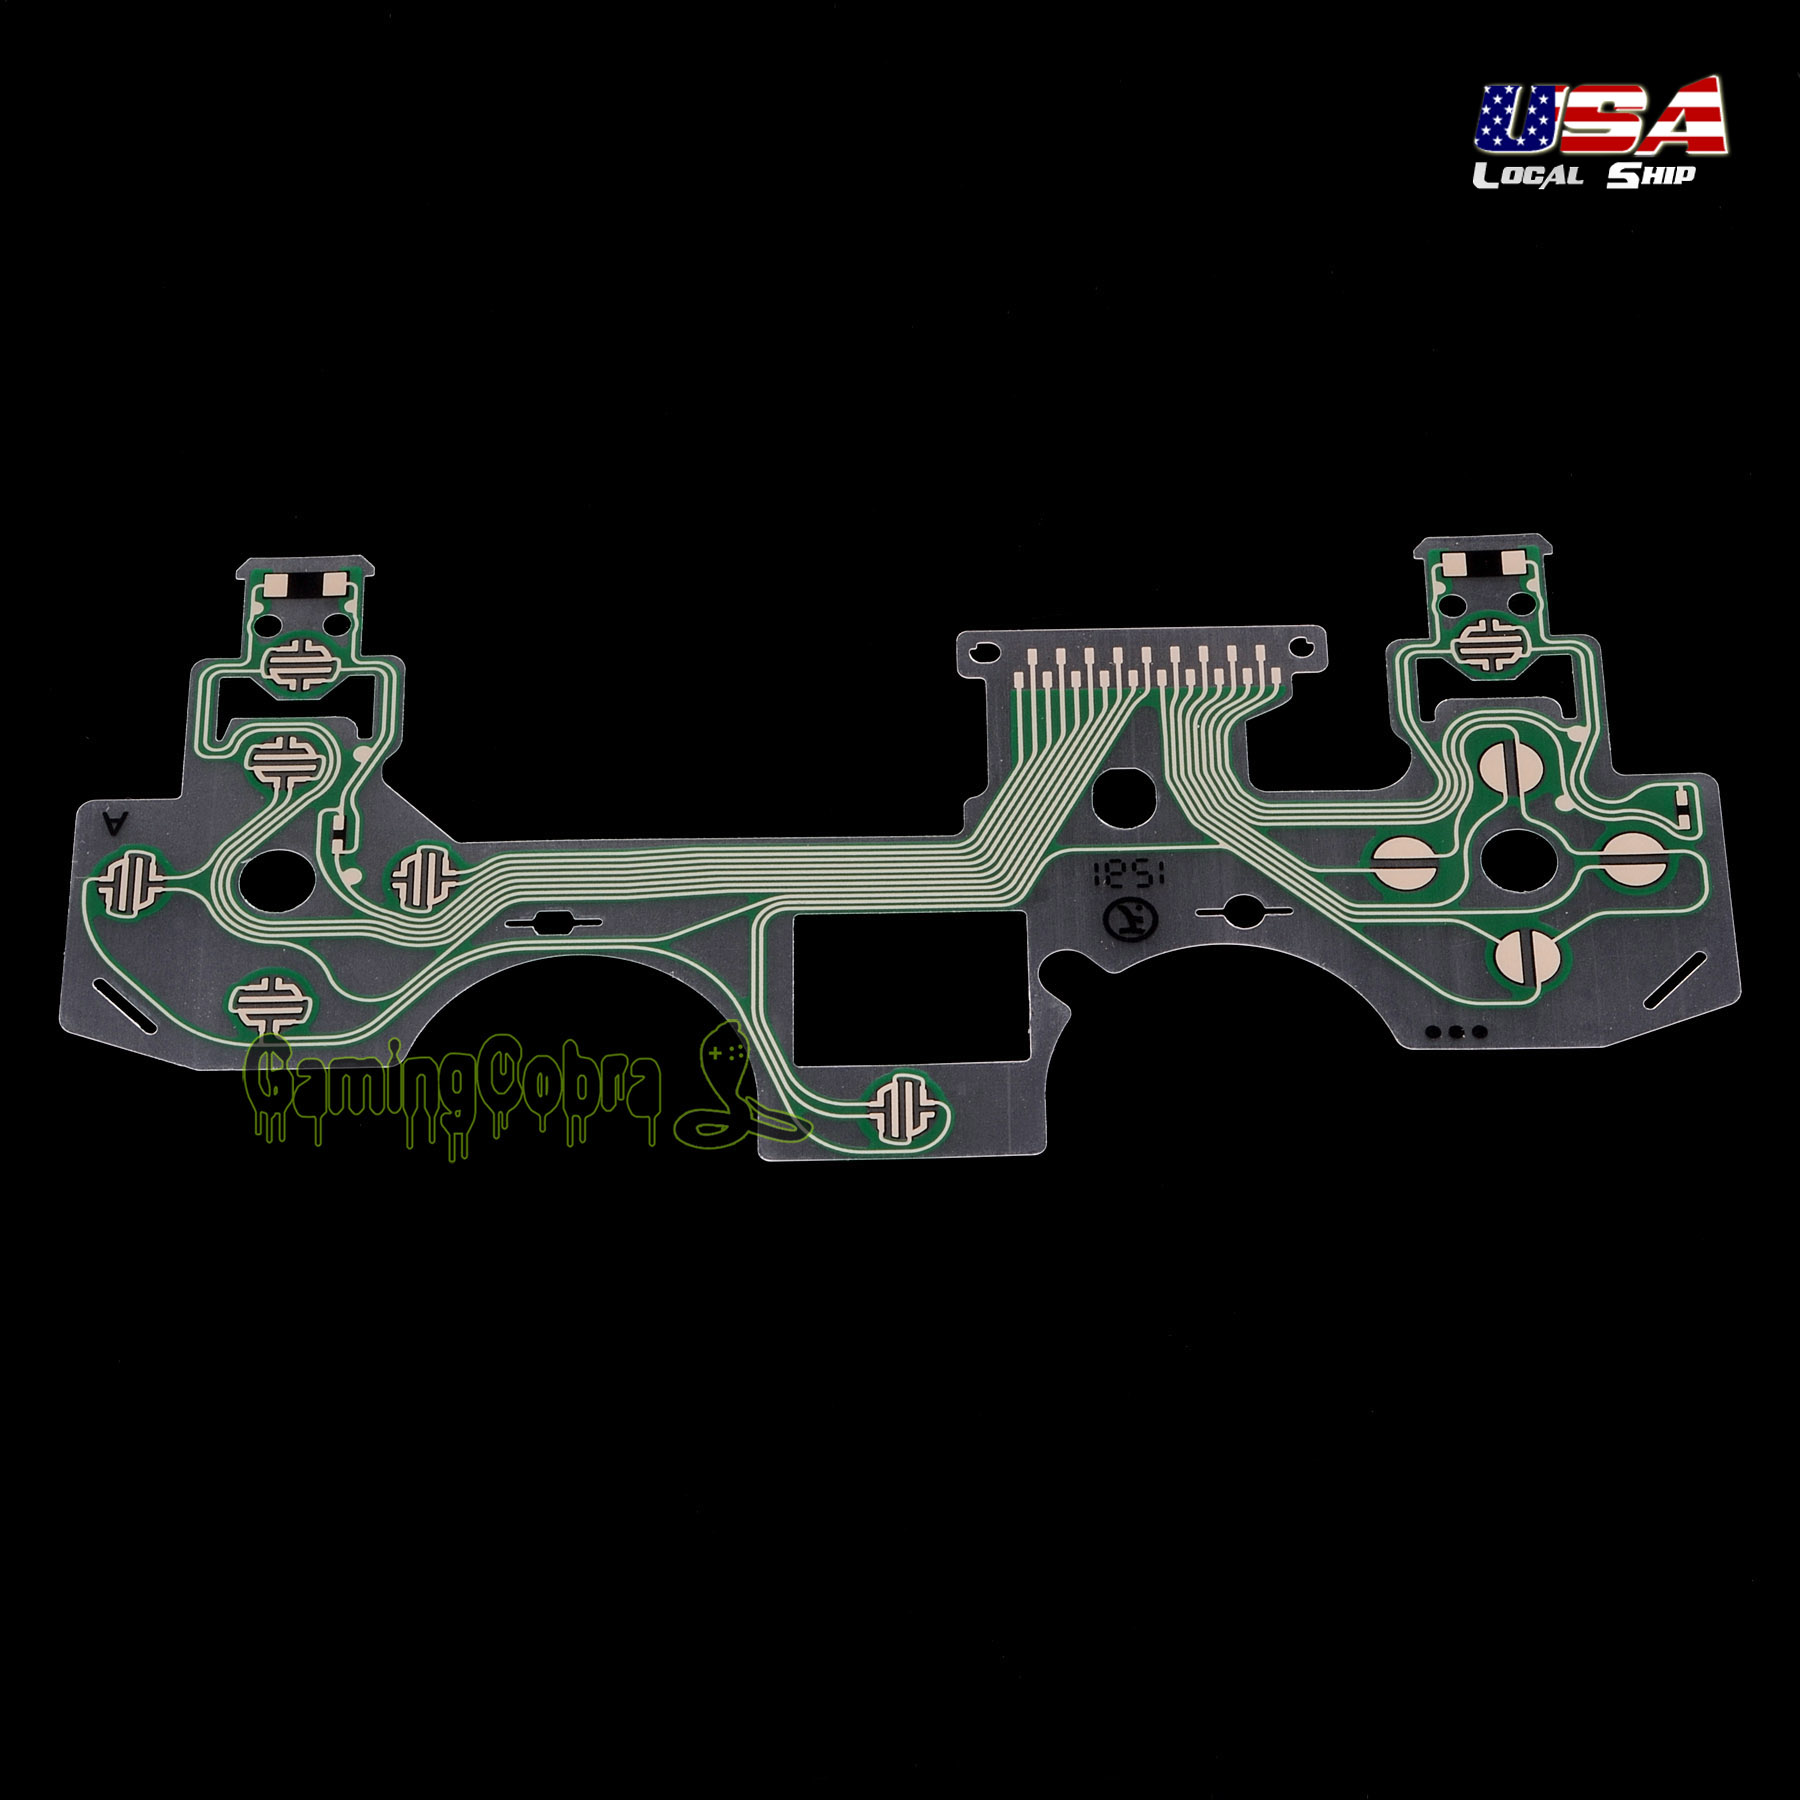 Decal Wrap For Sony Playstation 3 Ps3 Controller Circuit Board Ebay